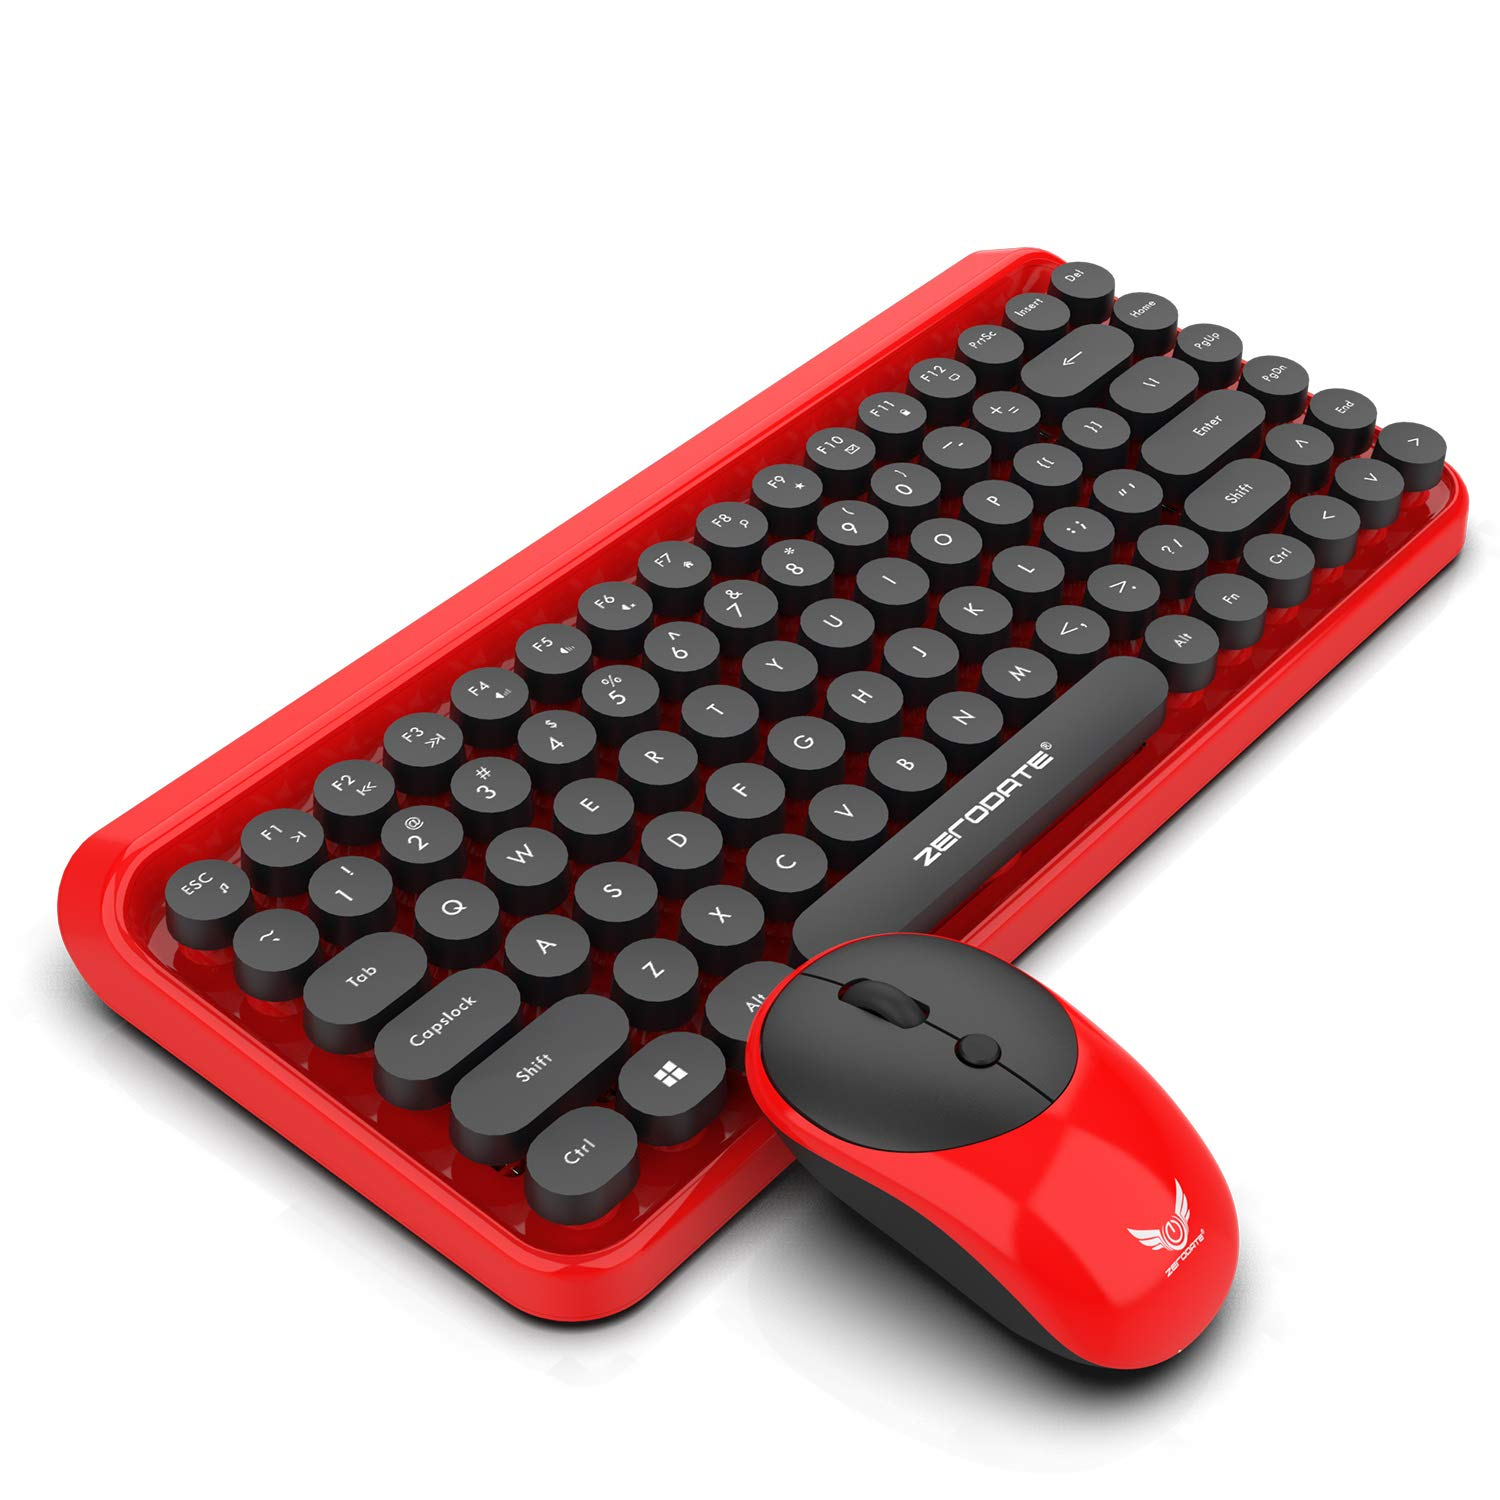 Top 10 Keyboard and Mouse